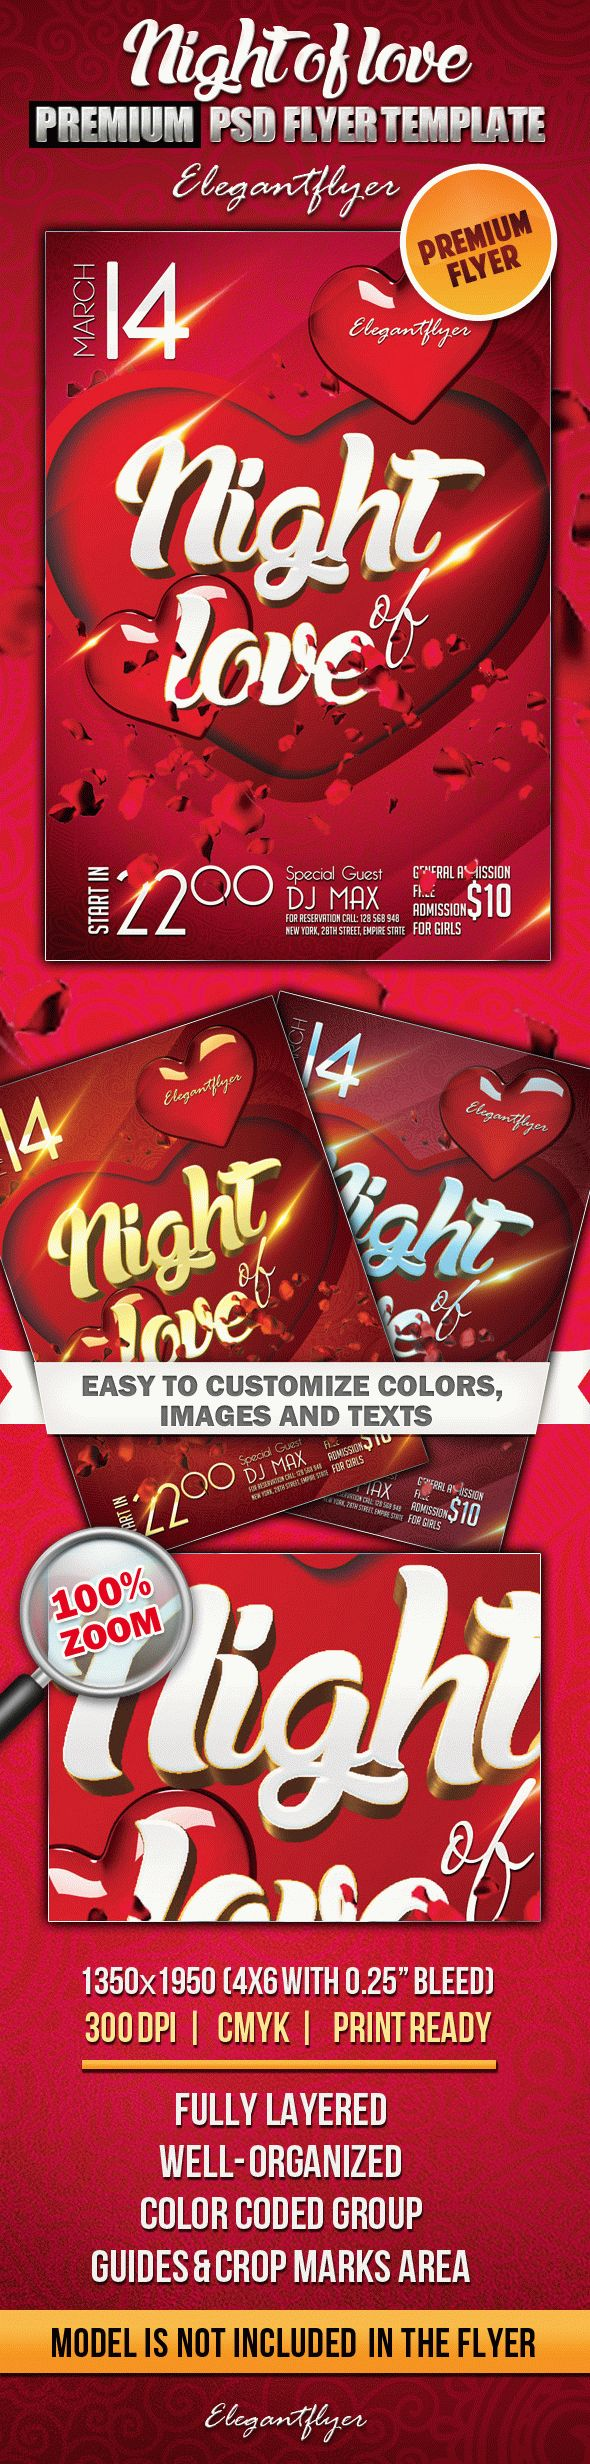 Night of love – Premium Club flyer PSD Template